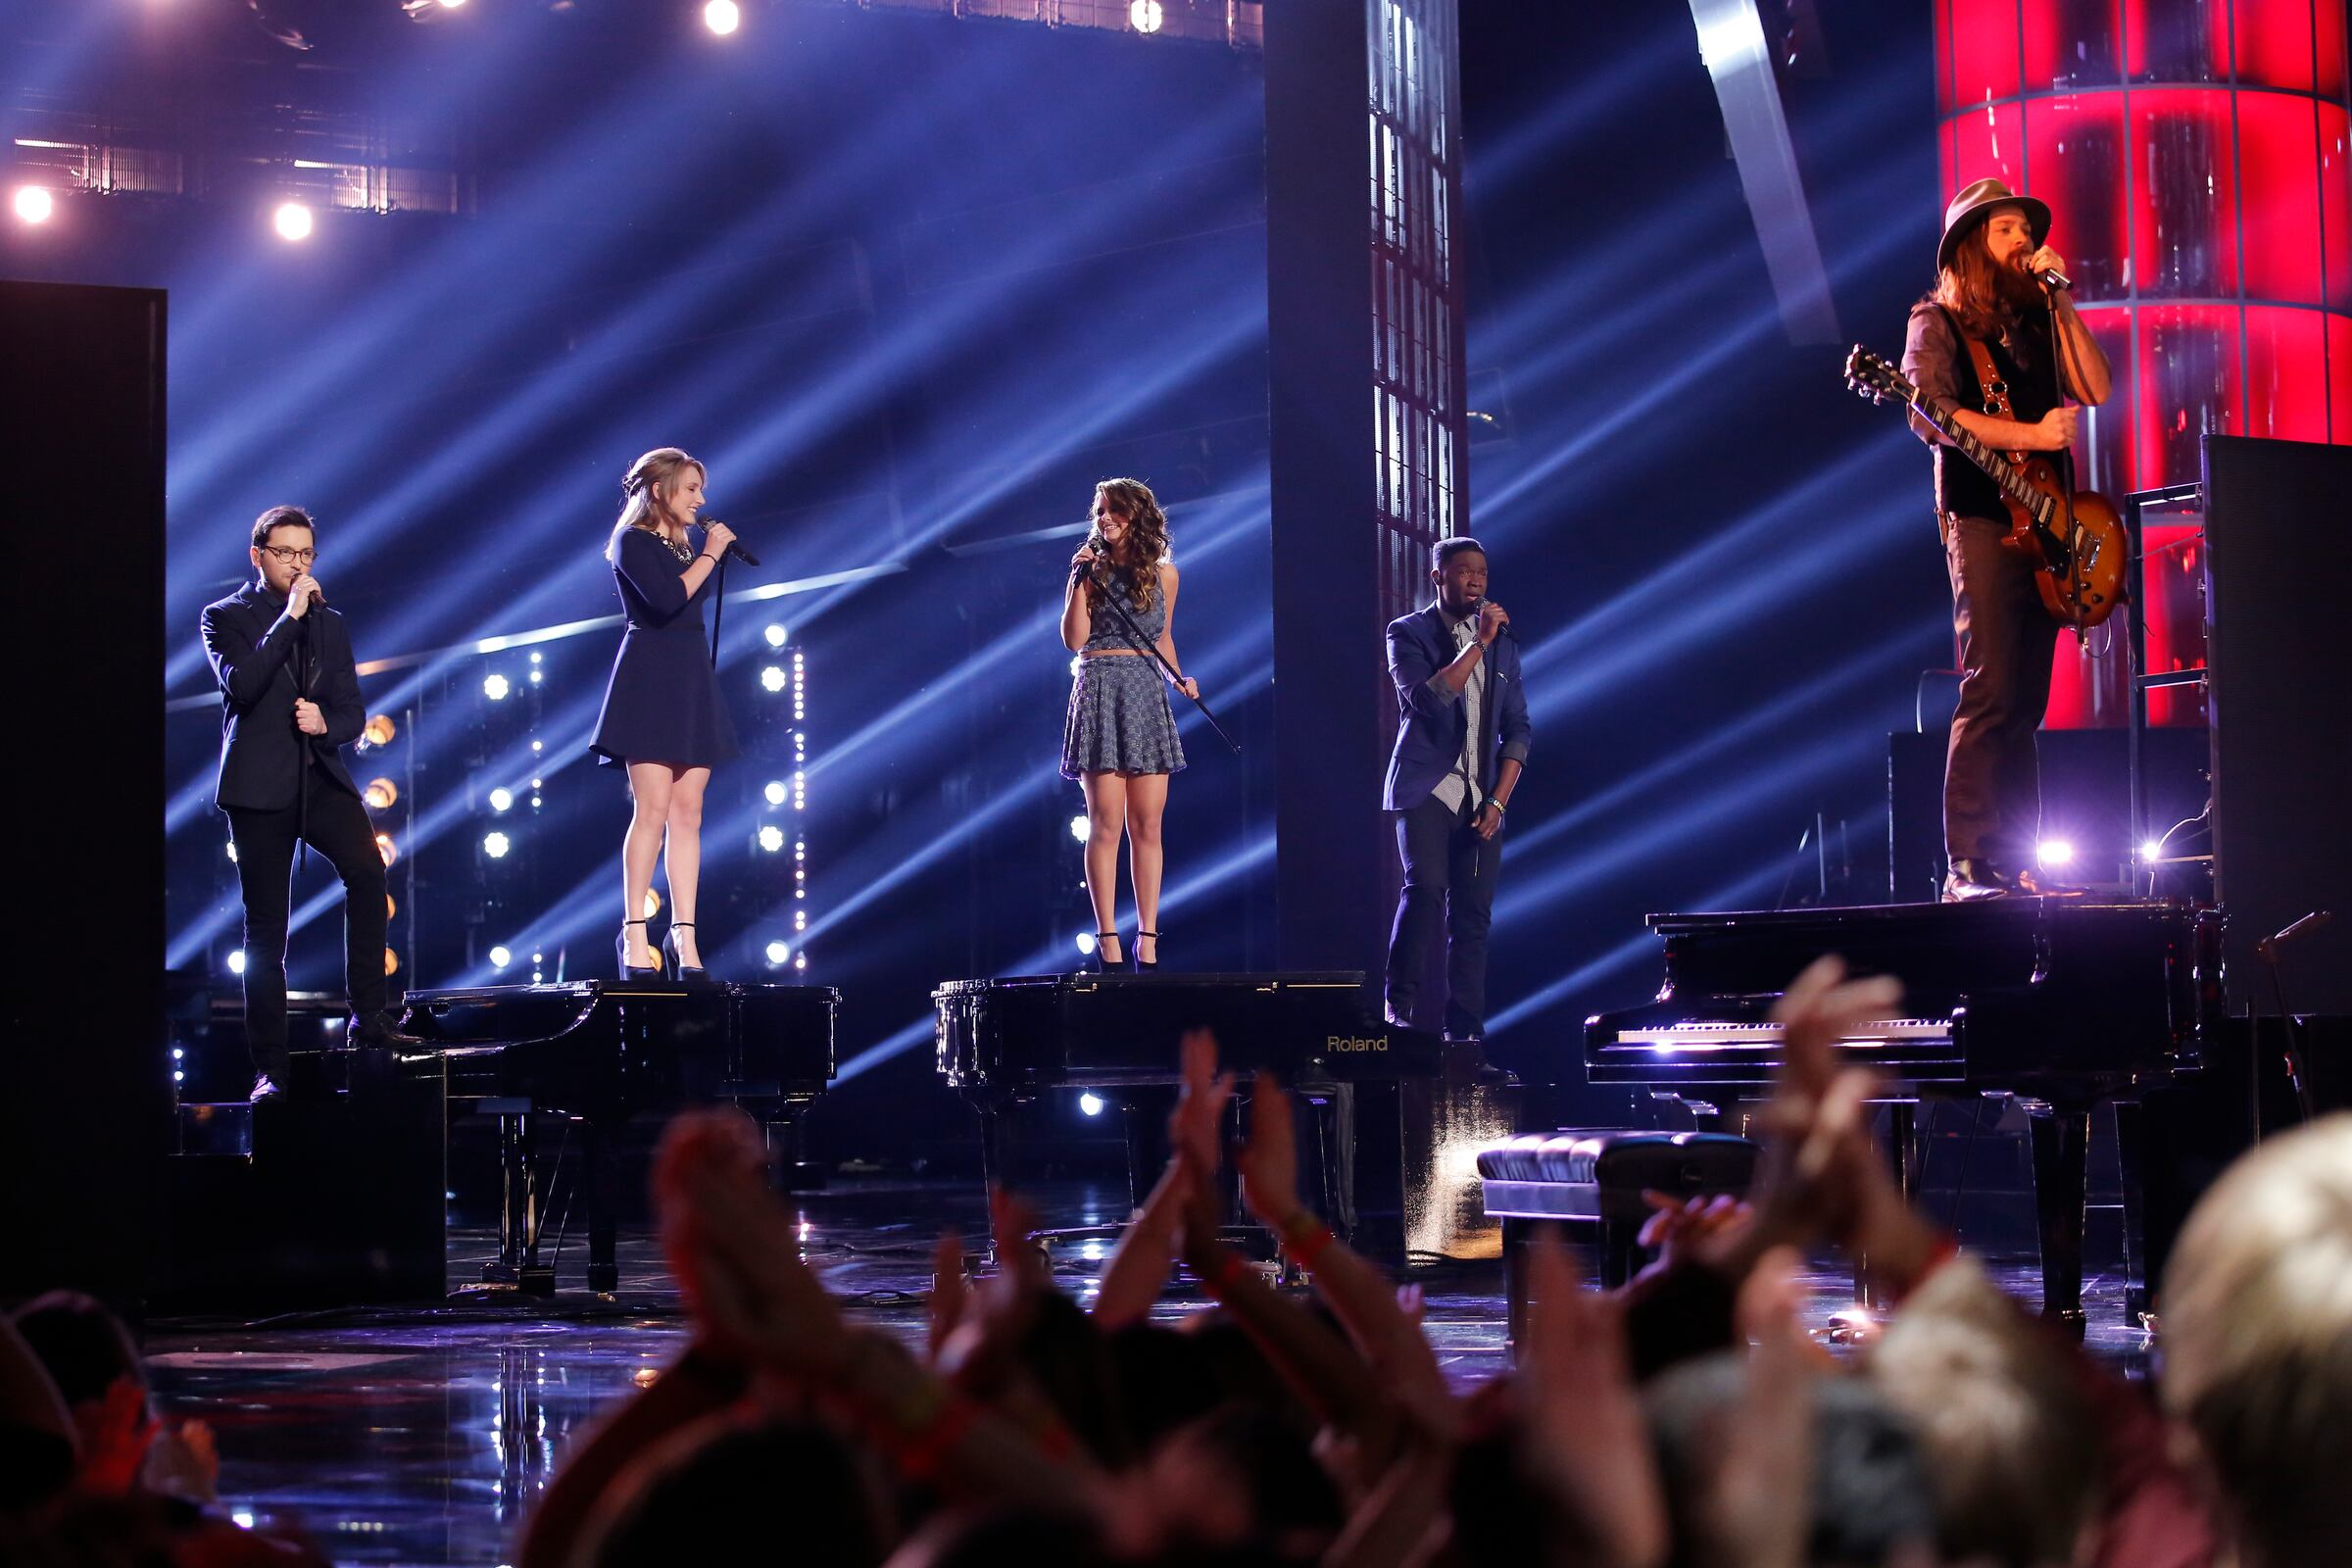 """Returning Tuesday night to learn the results, Jacquie first brought back her fellow contestants Caroline, Matthew and Cole for a rousing take on Queen's """"Bohemian Rhapsody"""" and joined the Top 20 on Outasight's hit """"Tonight Is the Night."""""""